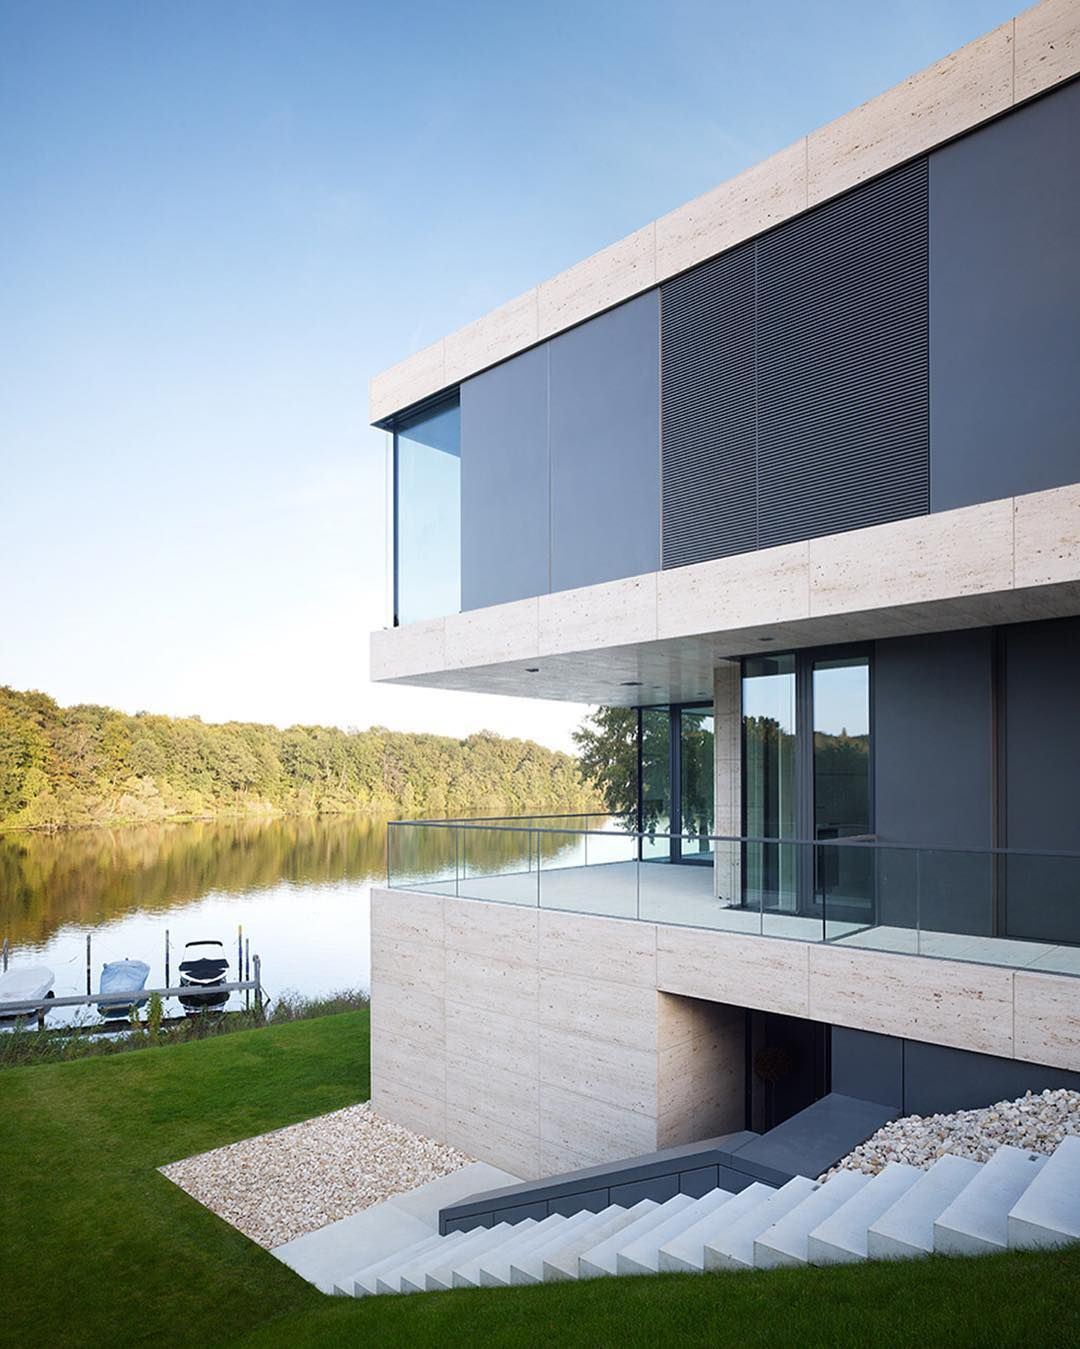 Virchowstrasse By Axthelm Rolvien Located In Potsdam